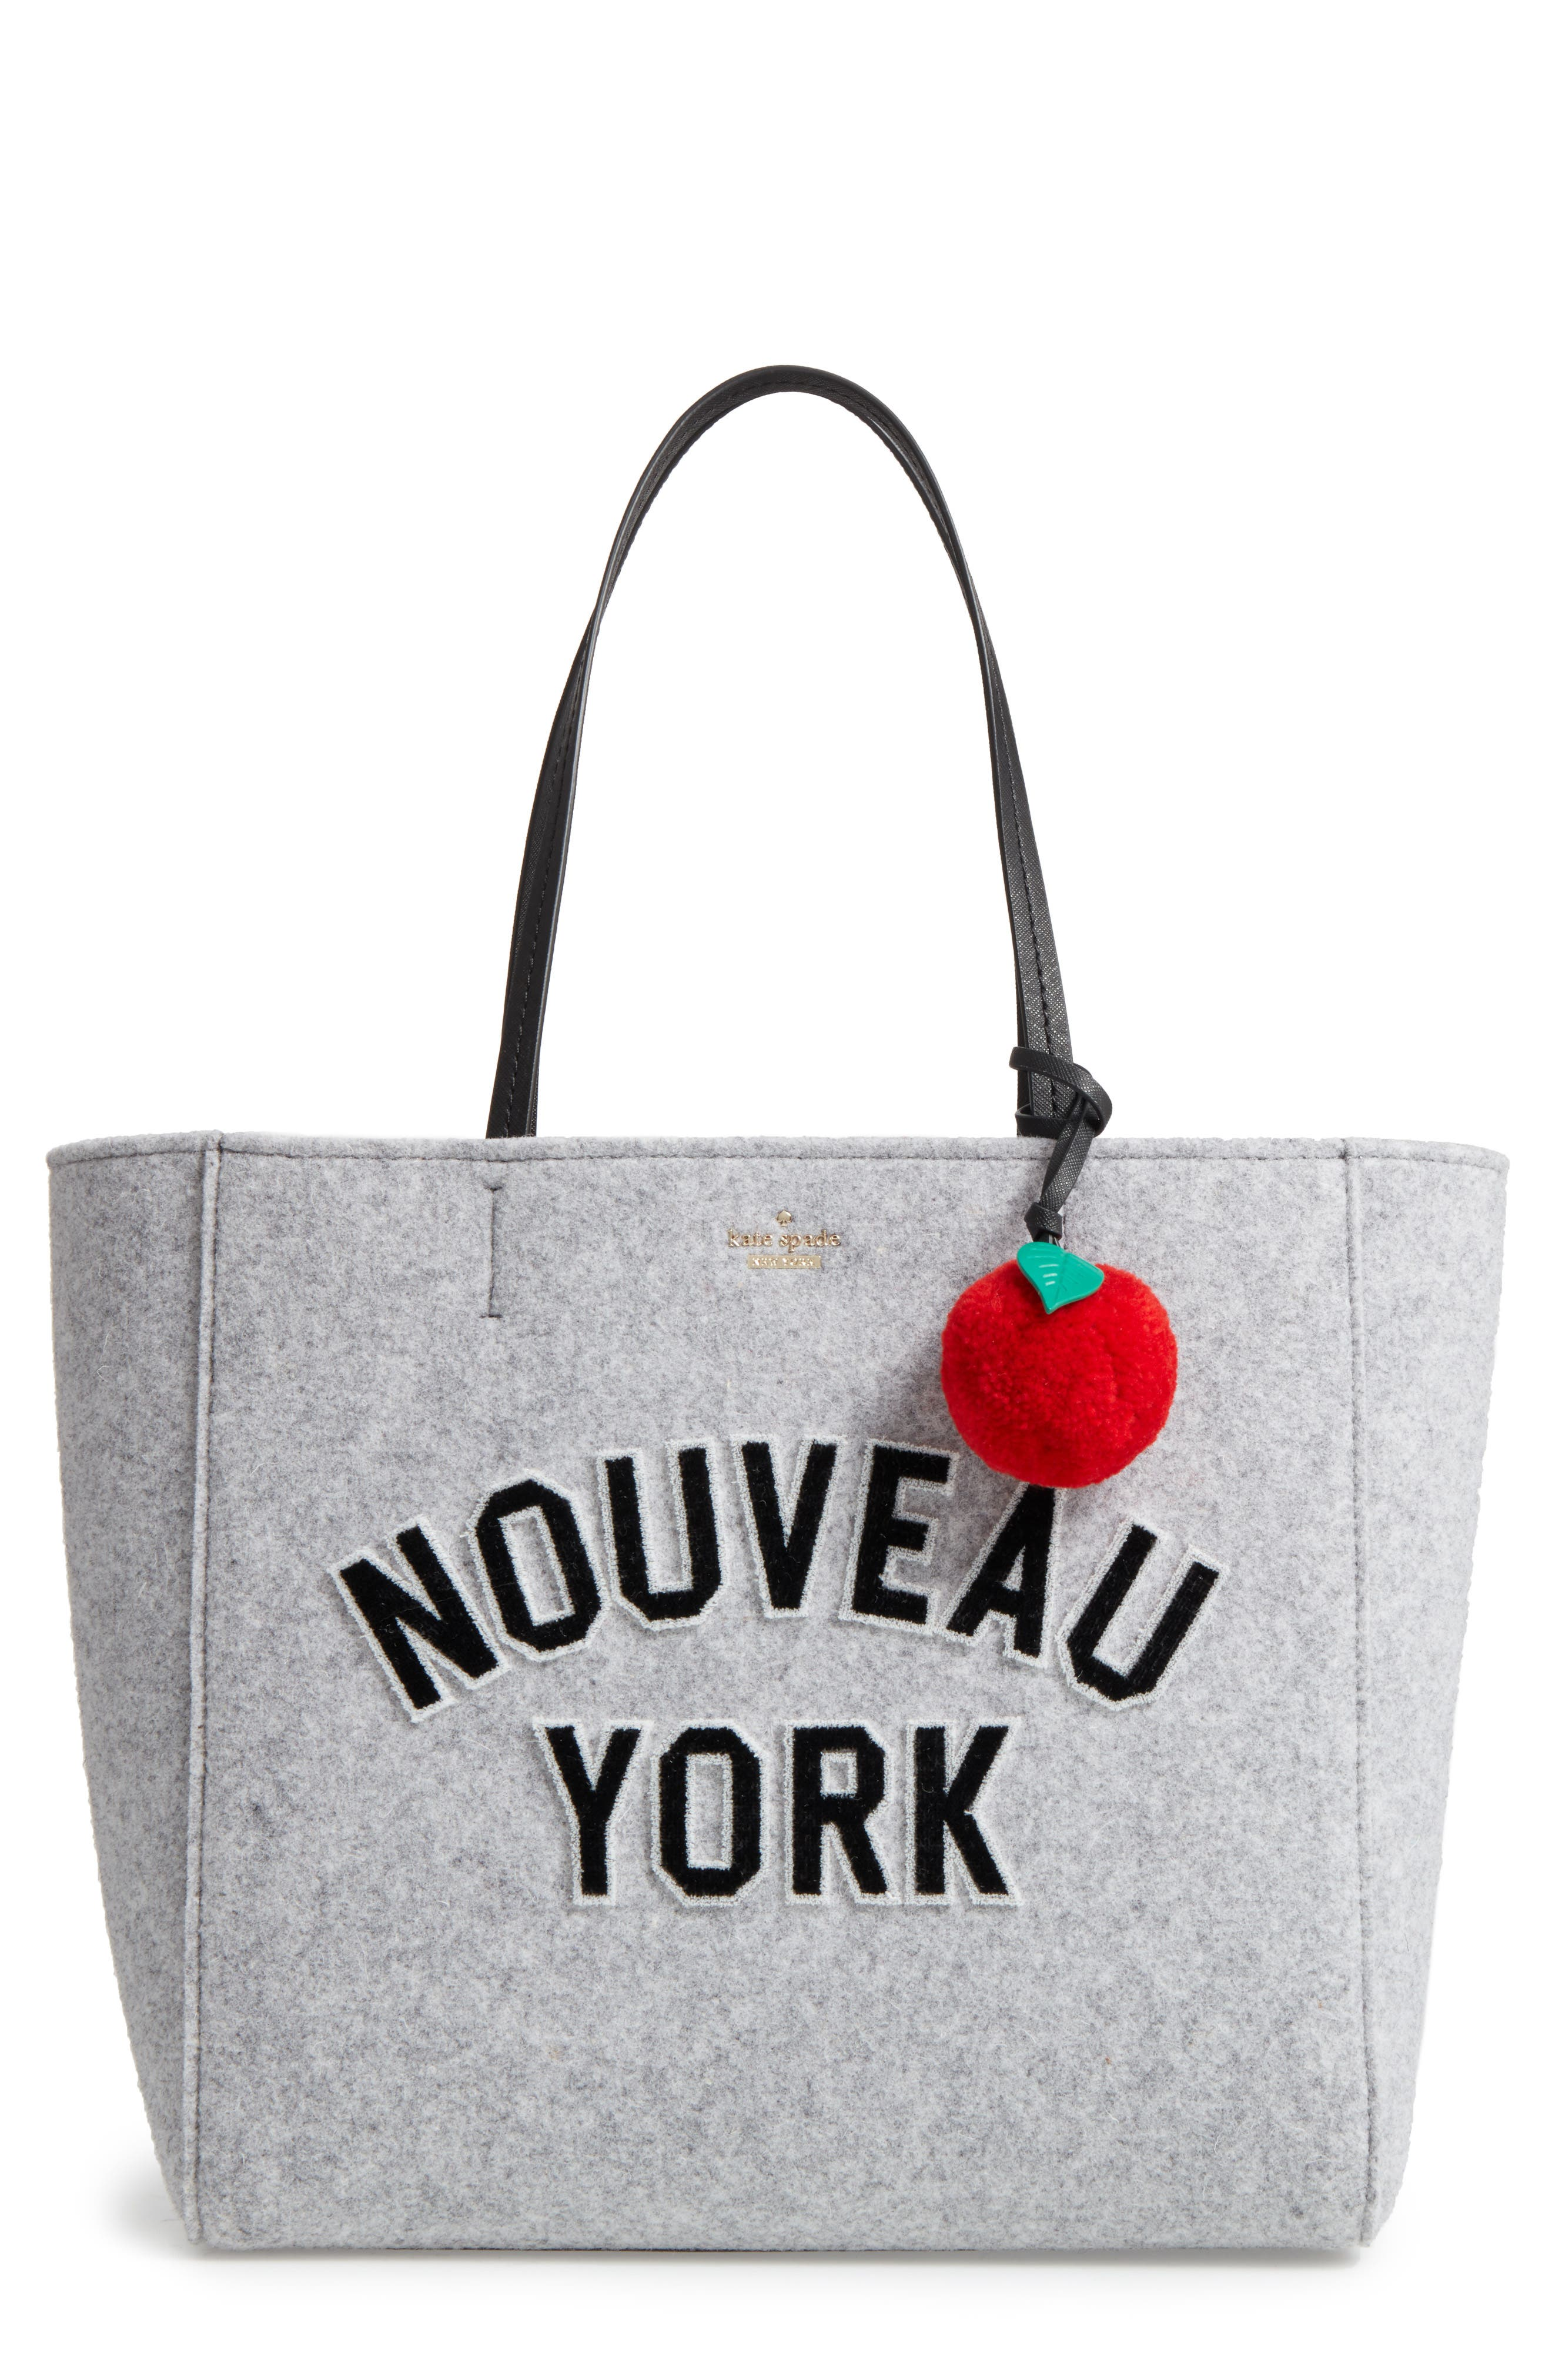 Alternate Image 1 Selected - kate spade new york nouveau york - hallie flannel tote & apple pom bag charm